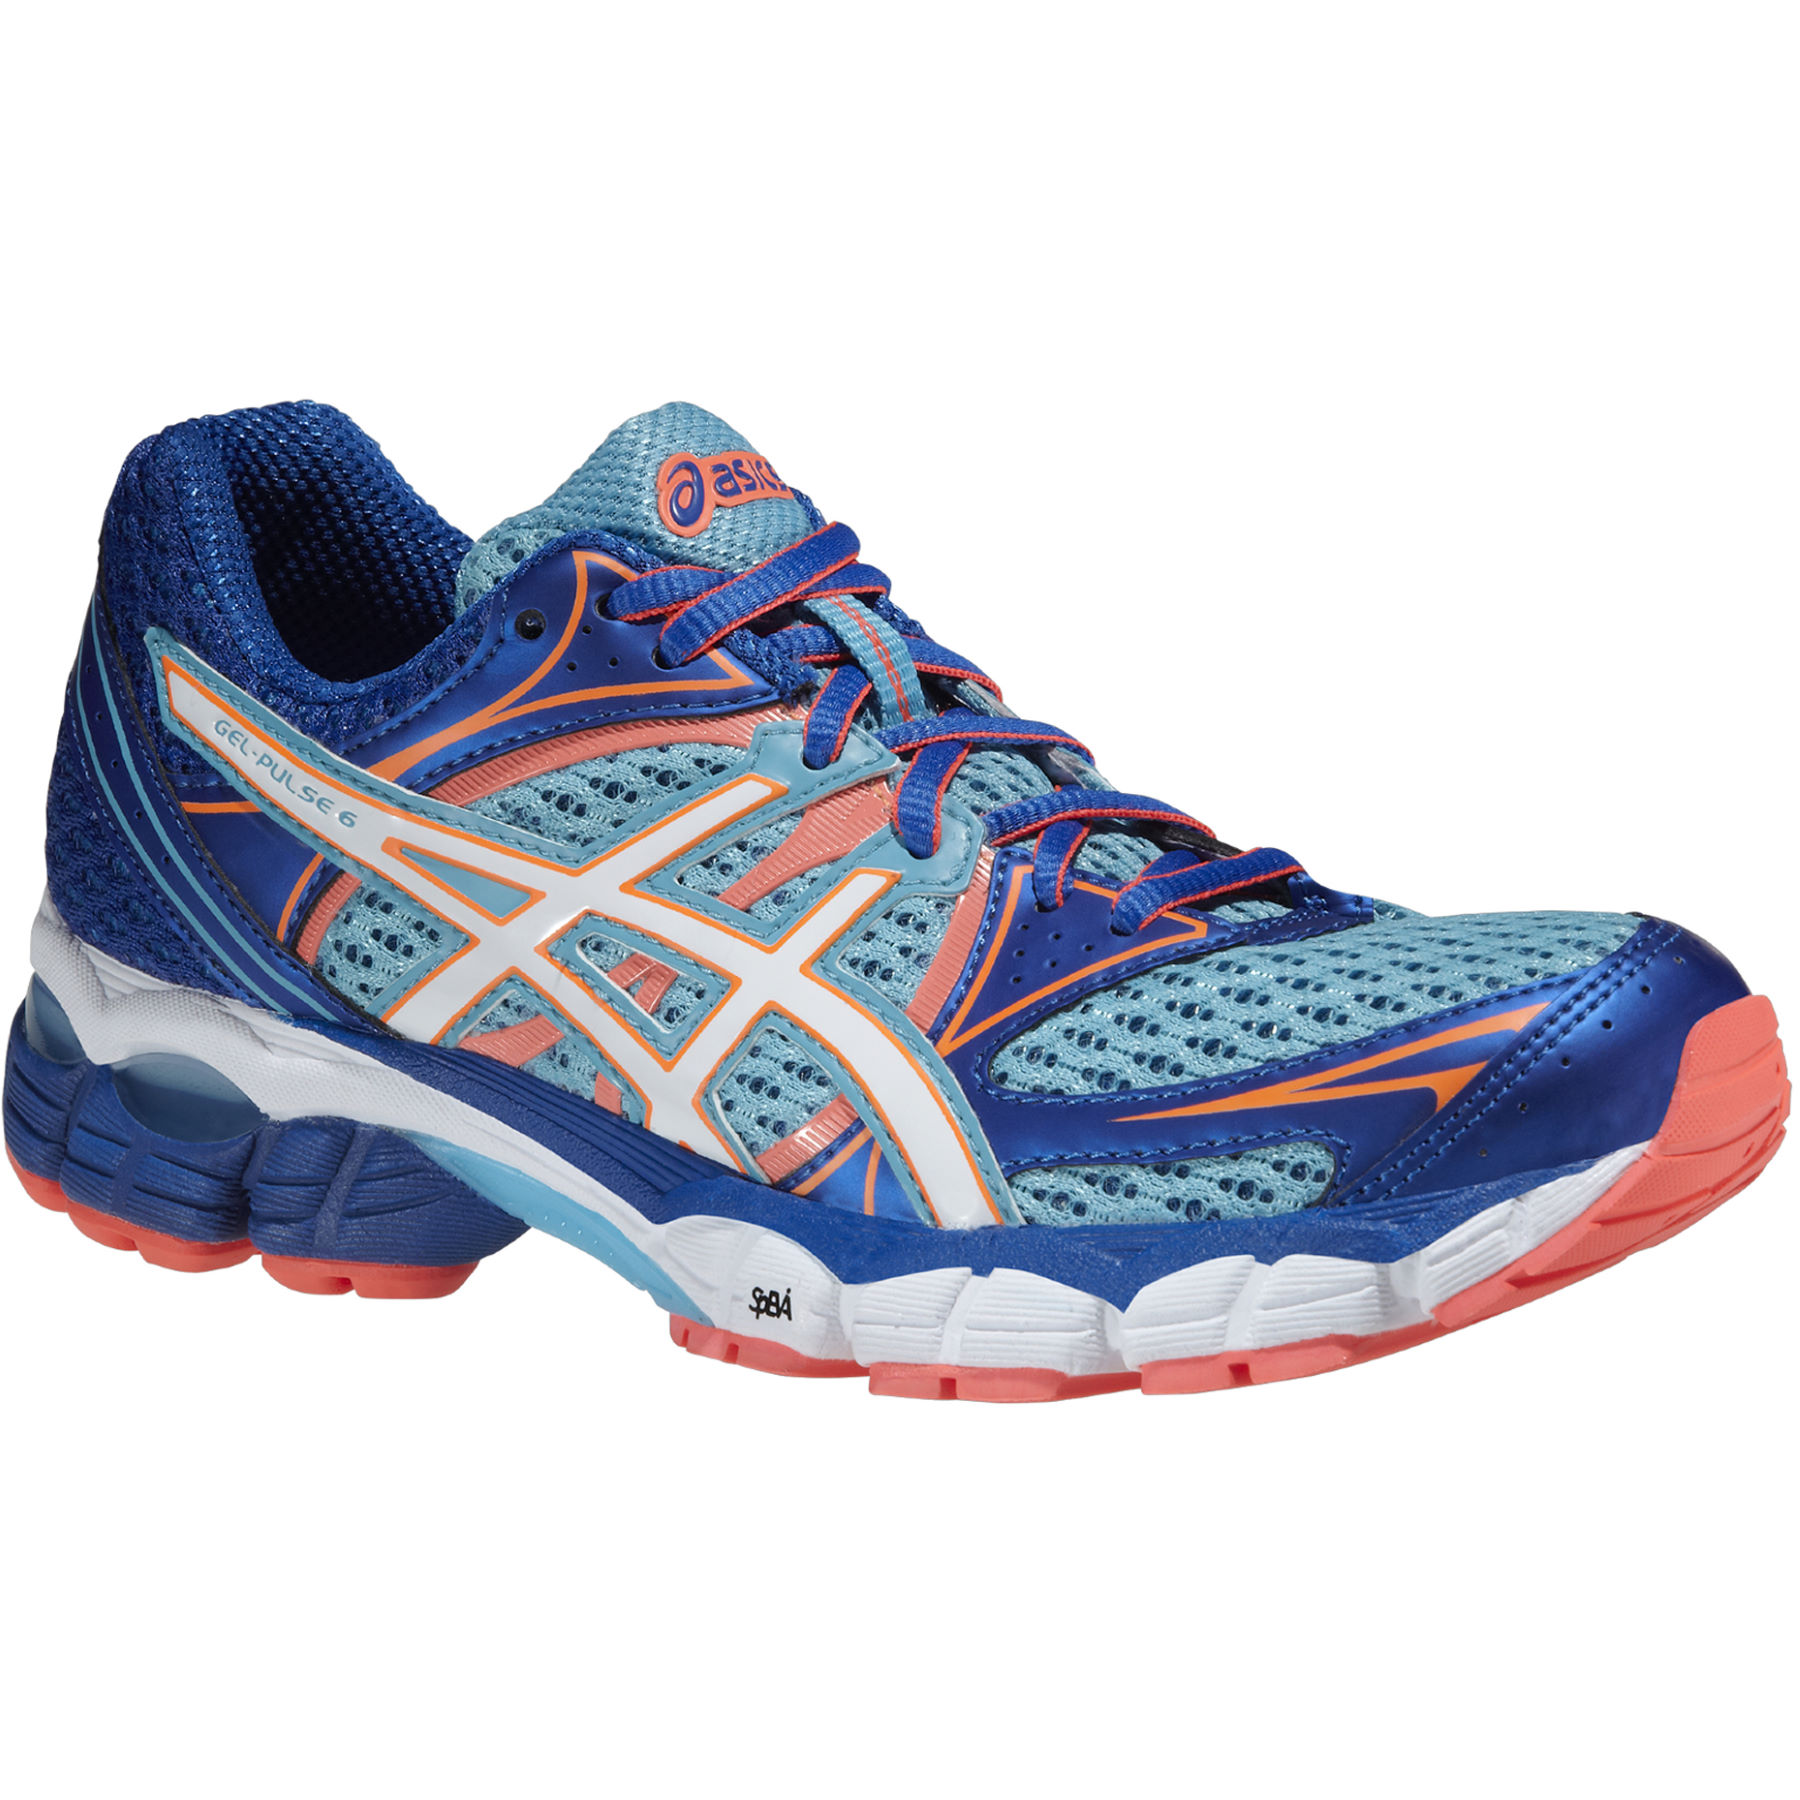 Zapatillas asics running 2014 zapatillas running asics gel - Asics Women S Gel Pulse 6 Shoes Aw14